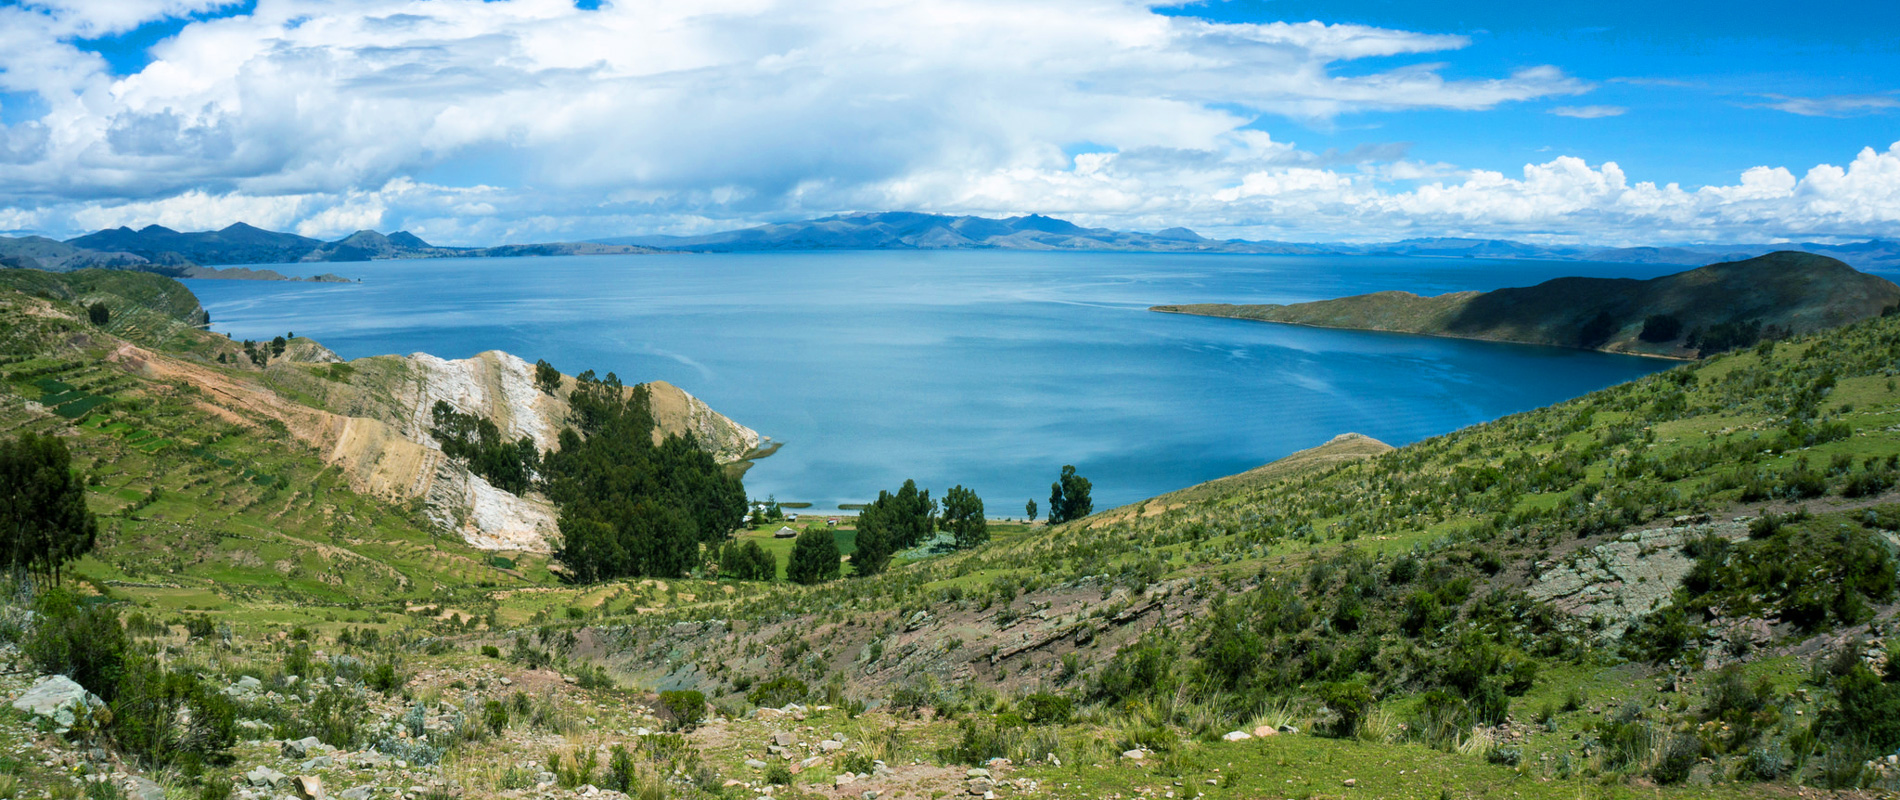 Bolivie | Lac Titicaca